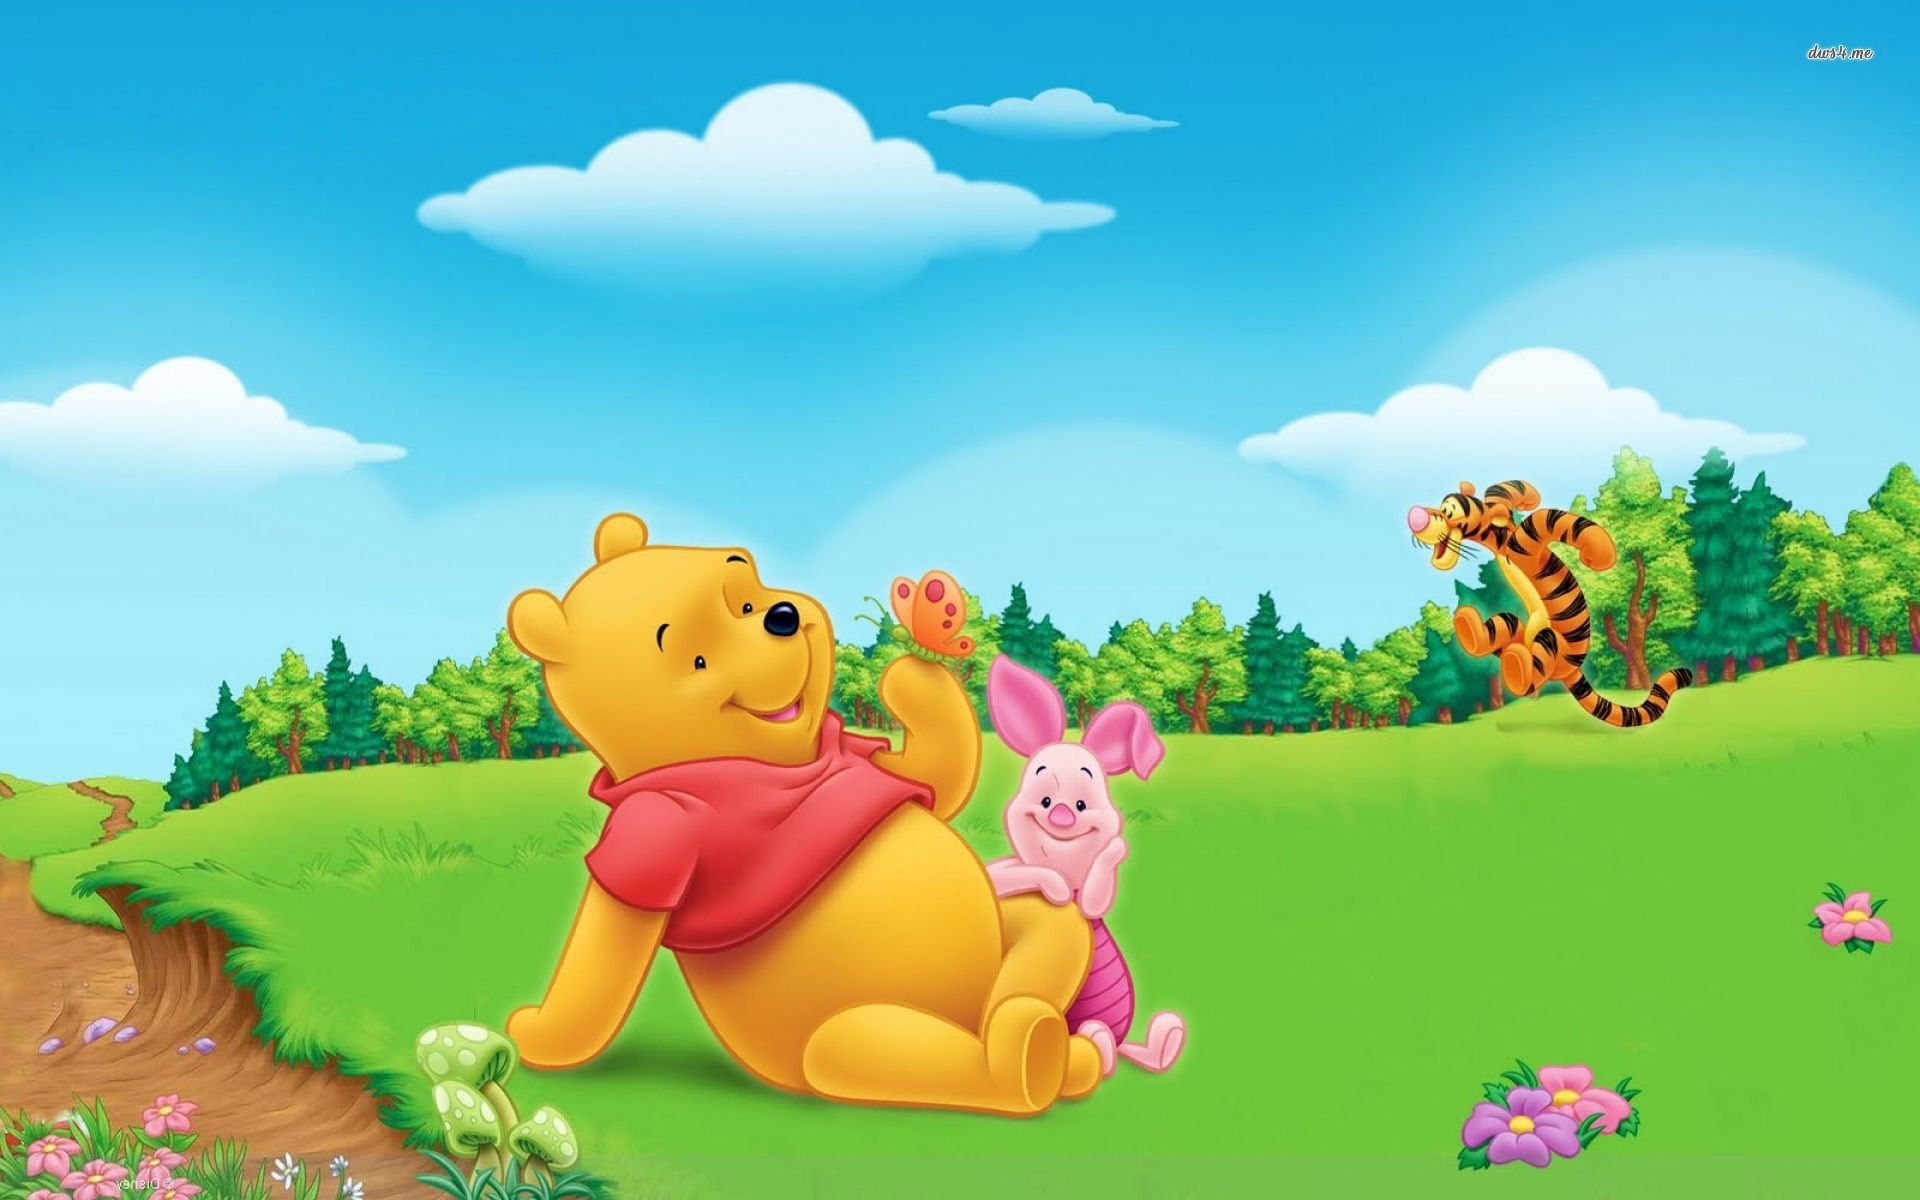 Winnie The Pooh Backgrounds For Desktop Hd Storm Holiday 1920x1200